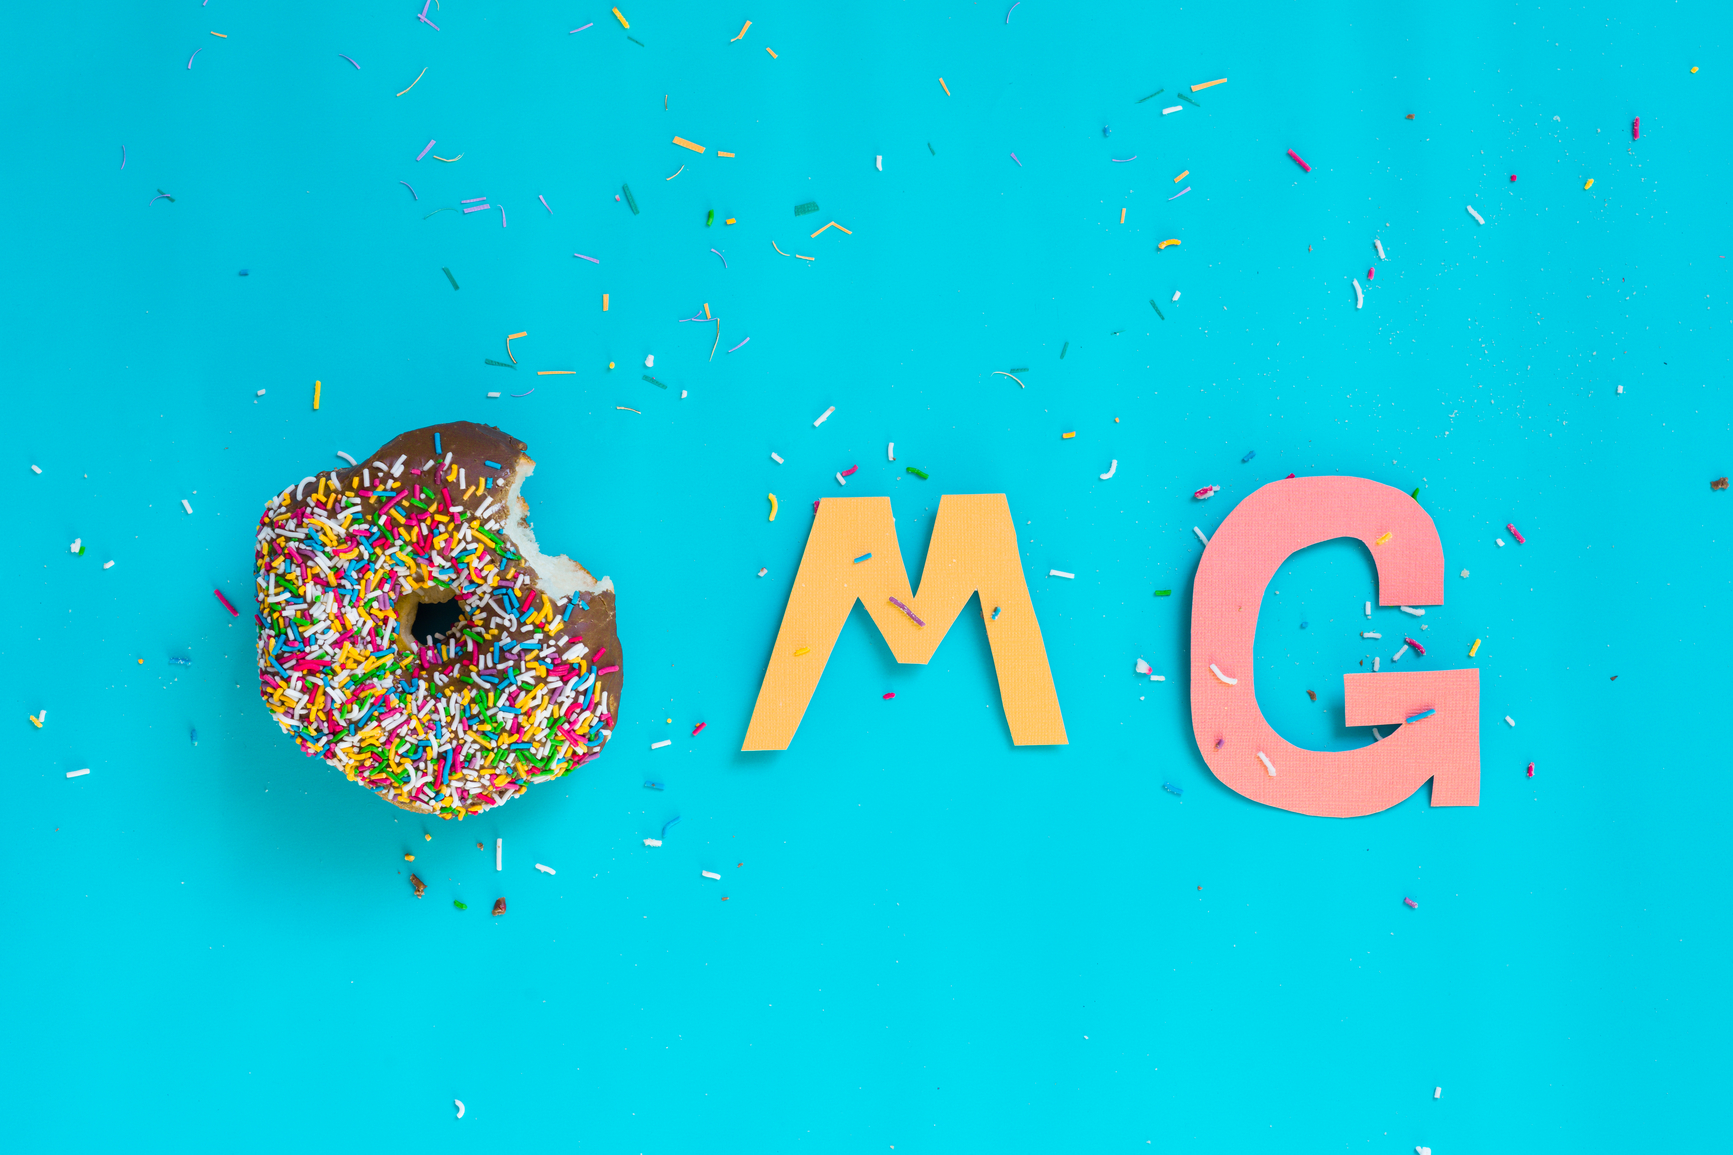 acronyms, OMG acronym spelt with doughnuts and paper cut-outs